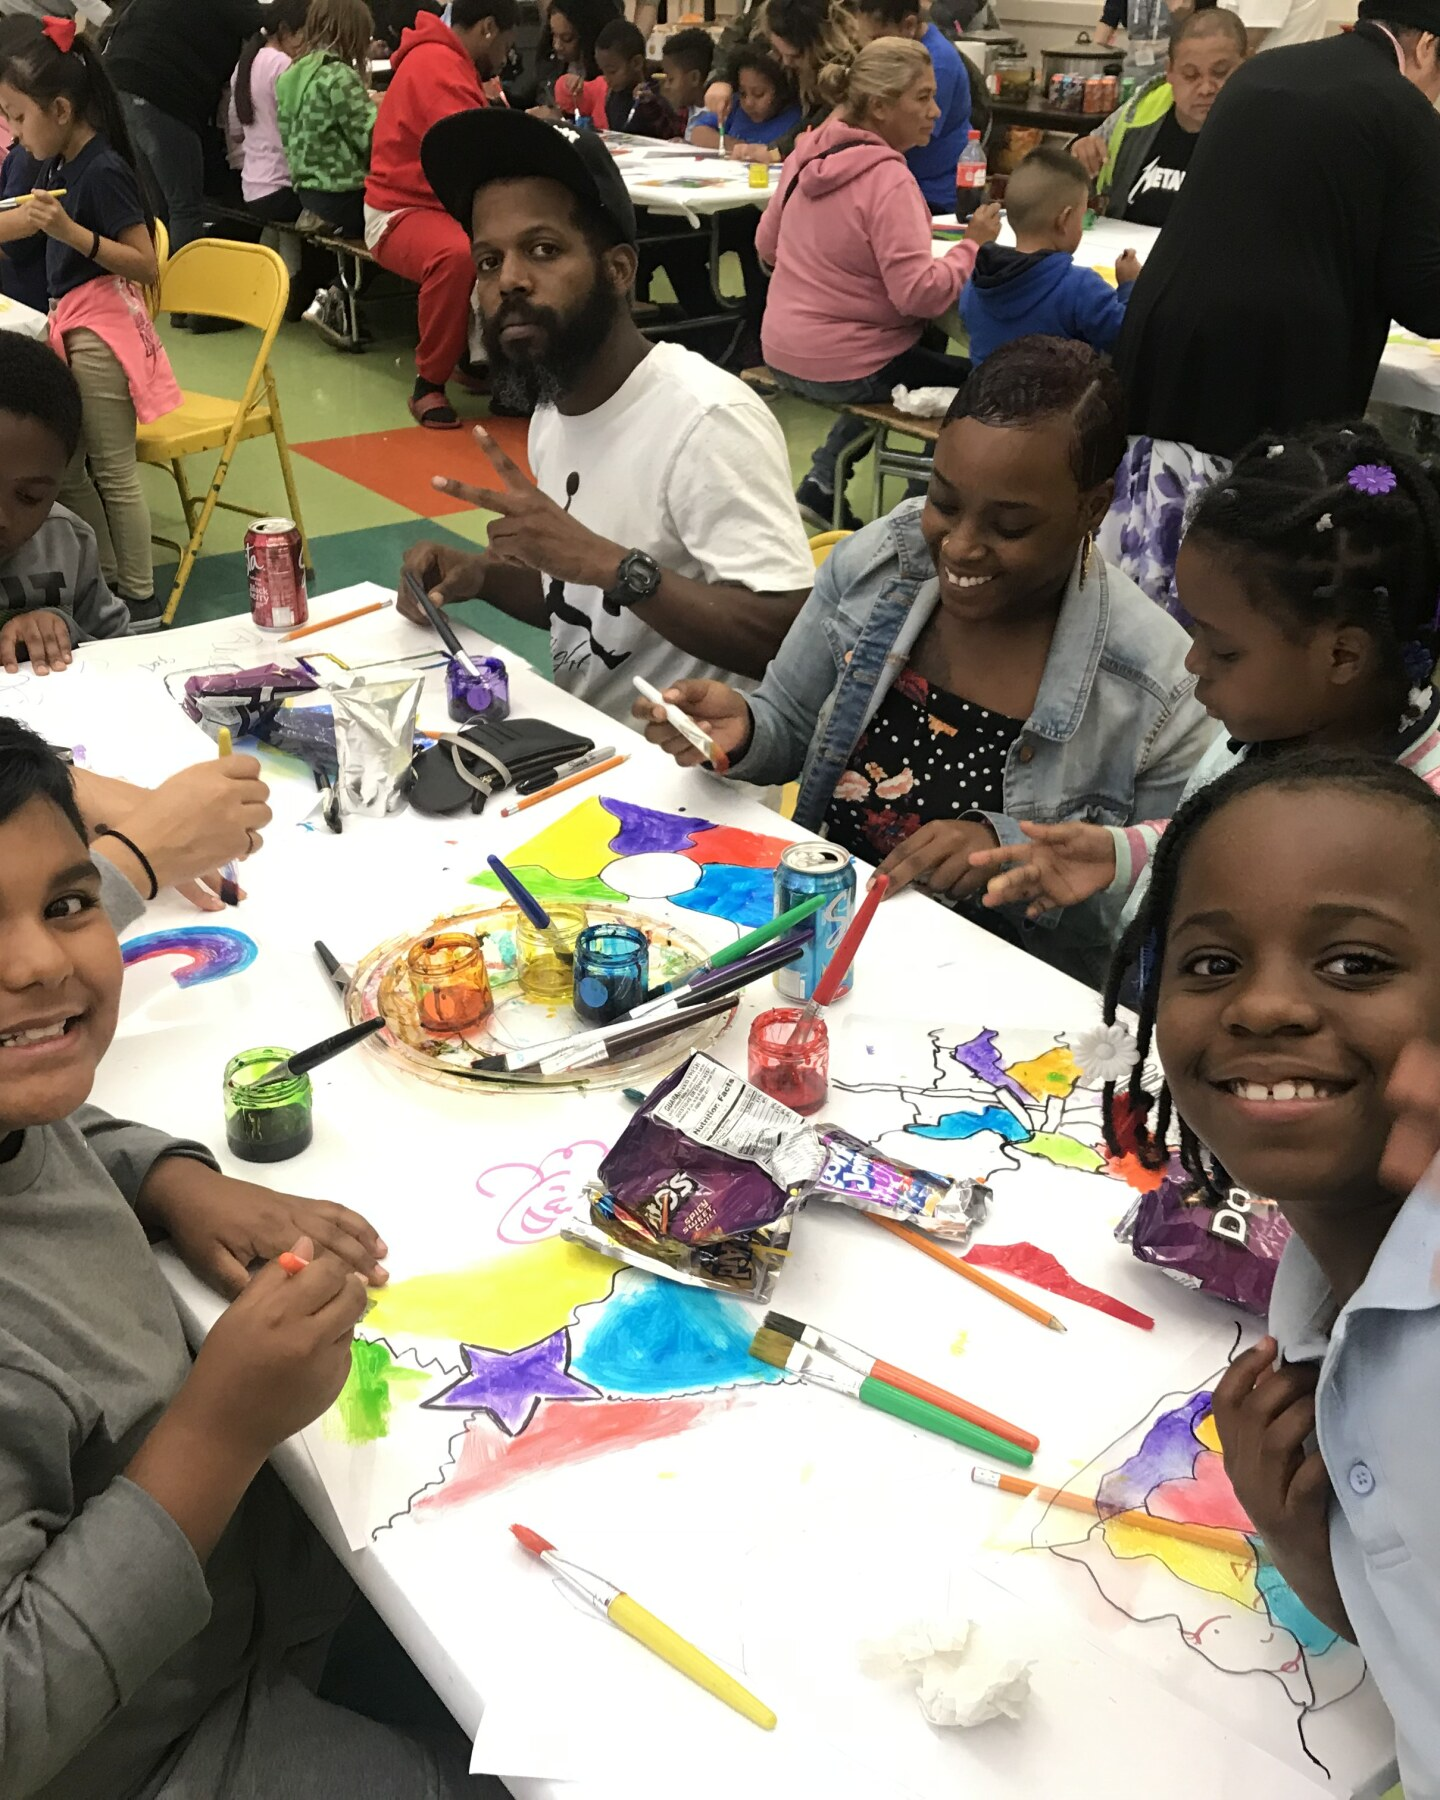 Children and their parents from Compton's McKinley K-8 School of Integrated Arts smile at the camera while doing arts and crafts activities.